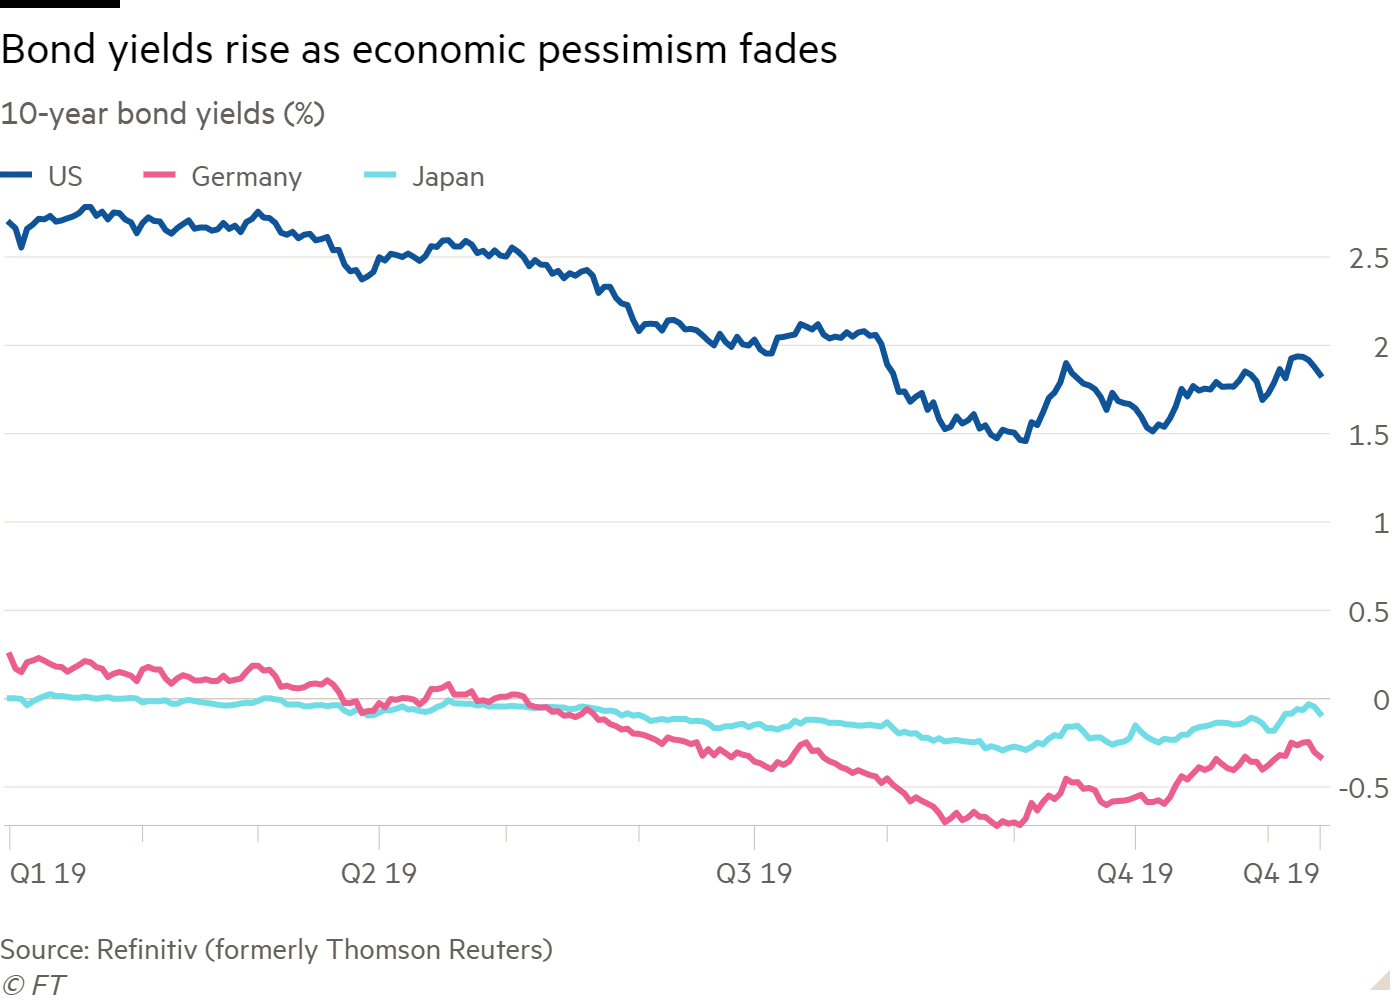 Line chart of 10-year bond yields (%) showing Bond yields rise as economic pessimism fades